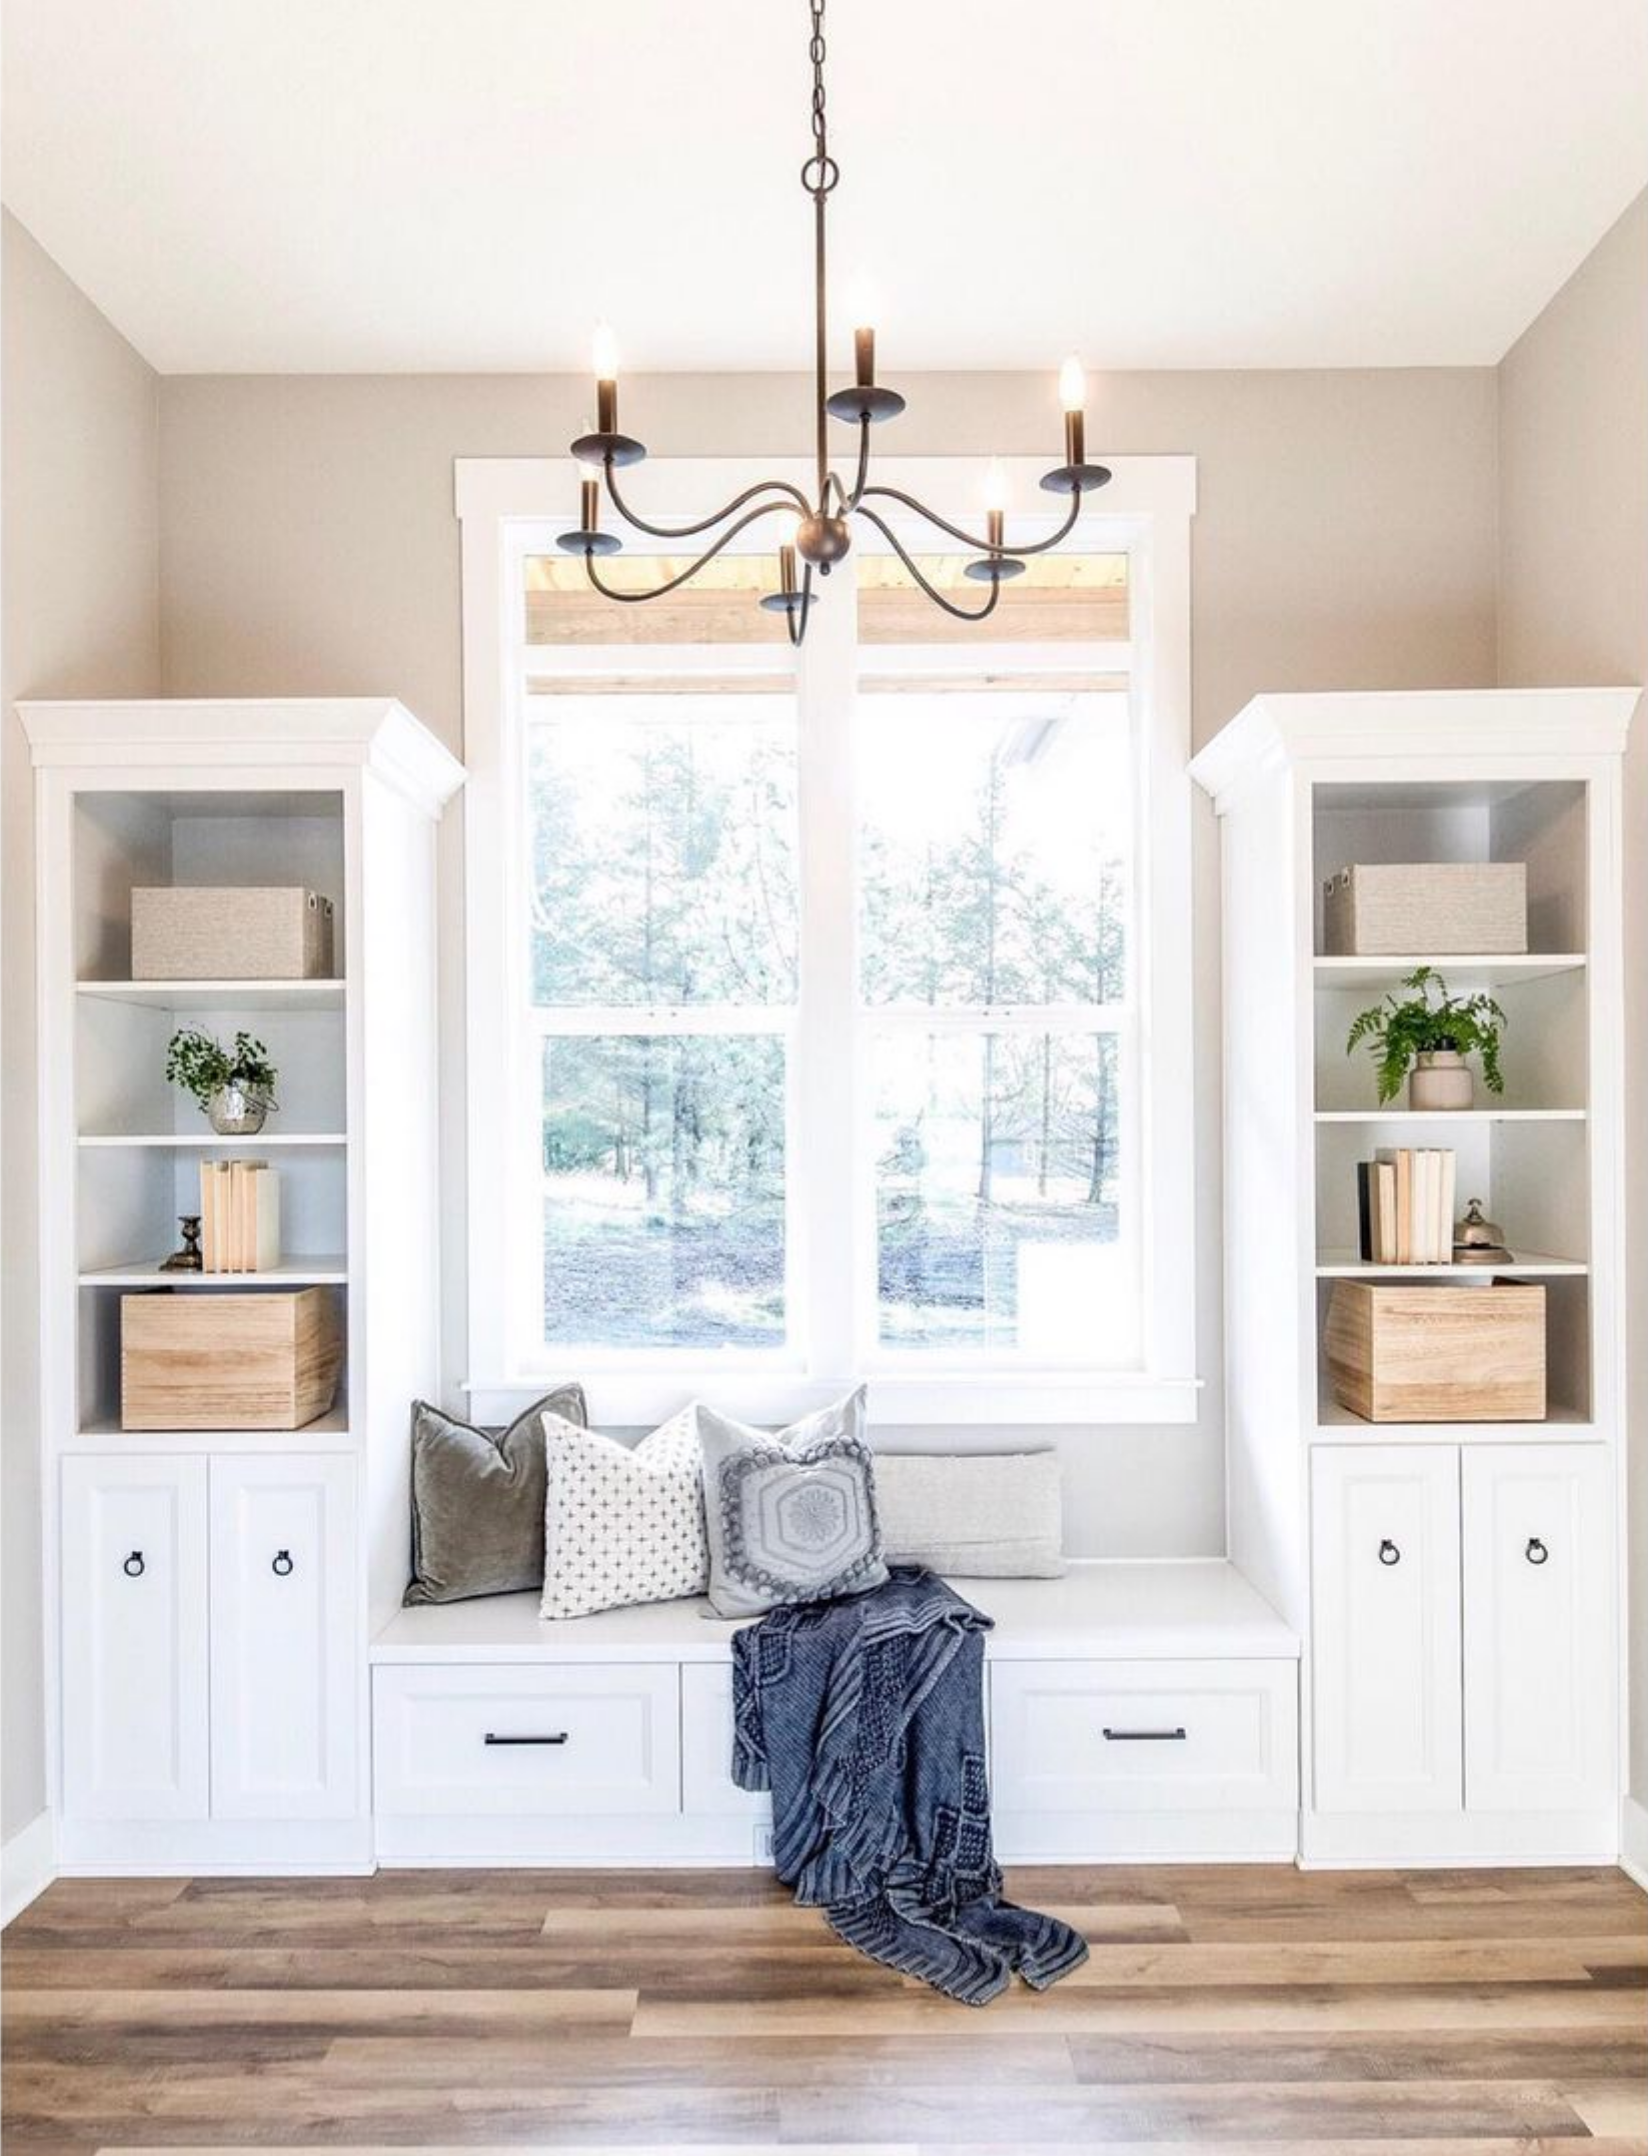 20+ Beautiful Light Greige Paint Colors feat. 'Repose Gray' from Sherwin Williams, IMAGE CREDIT: @fridleyhomes on Instagram